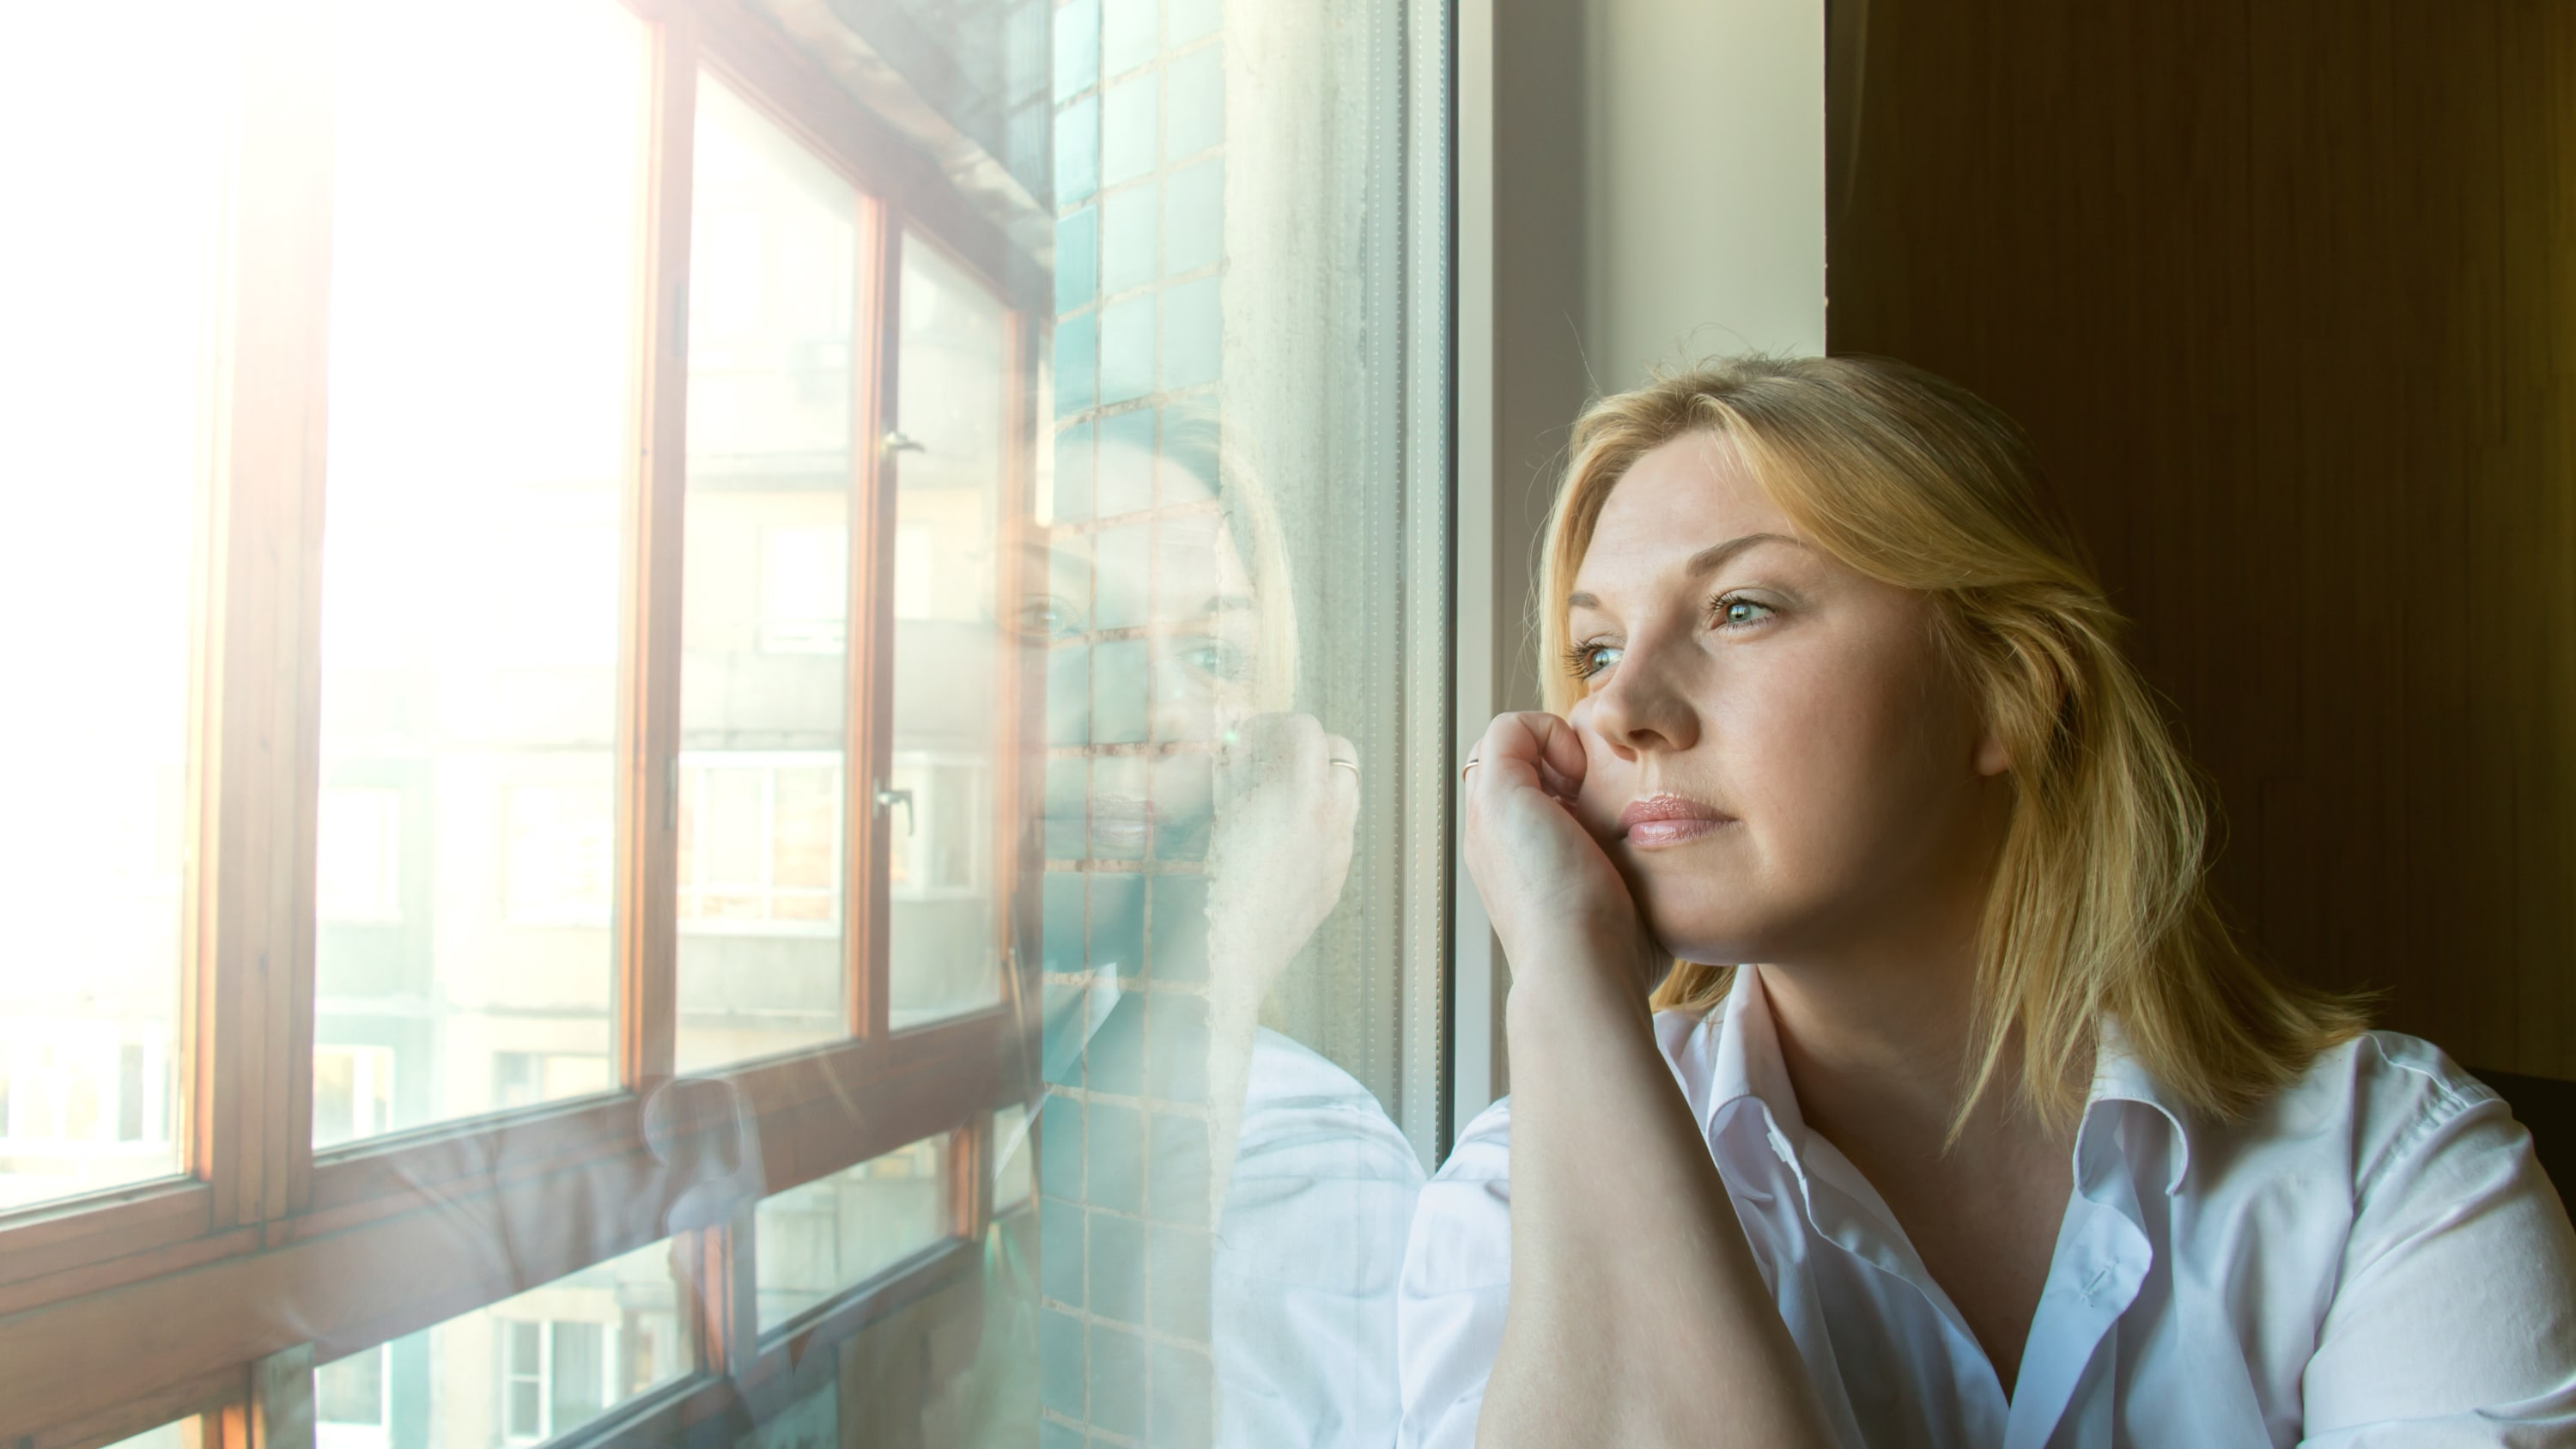 A woman possibly thinking about a colorectal cancer diagnosis